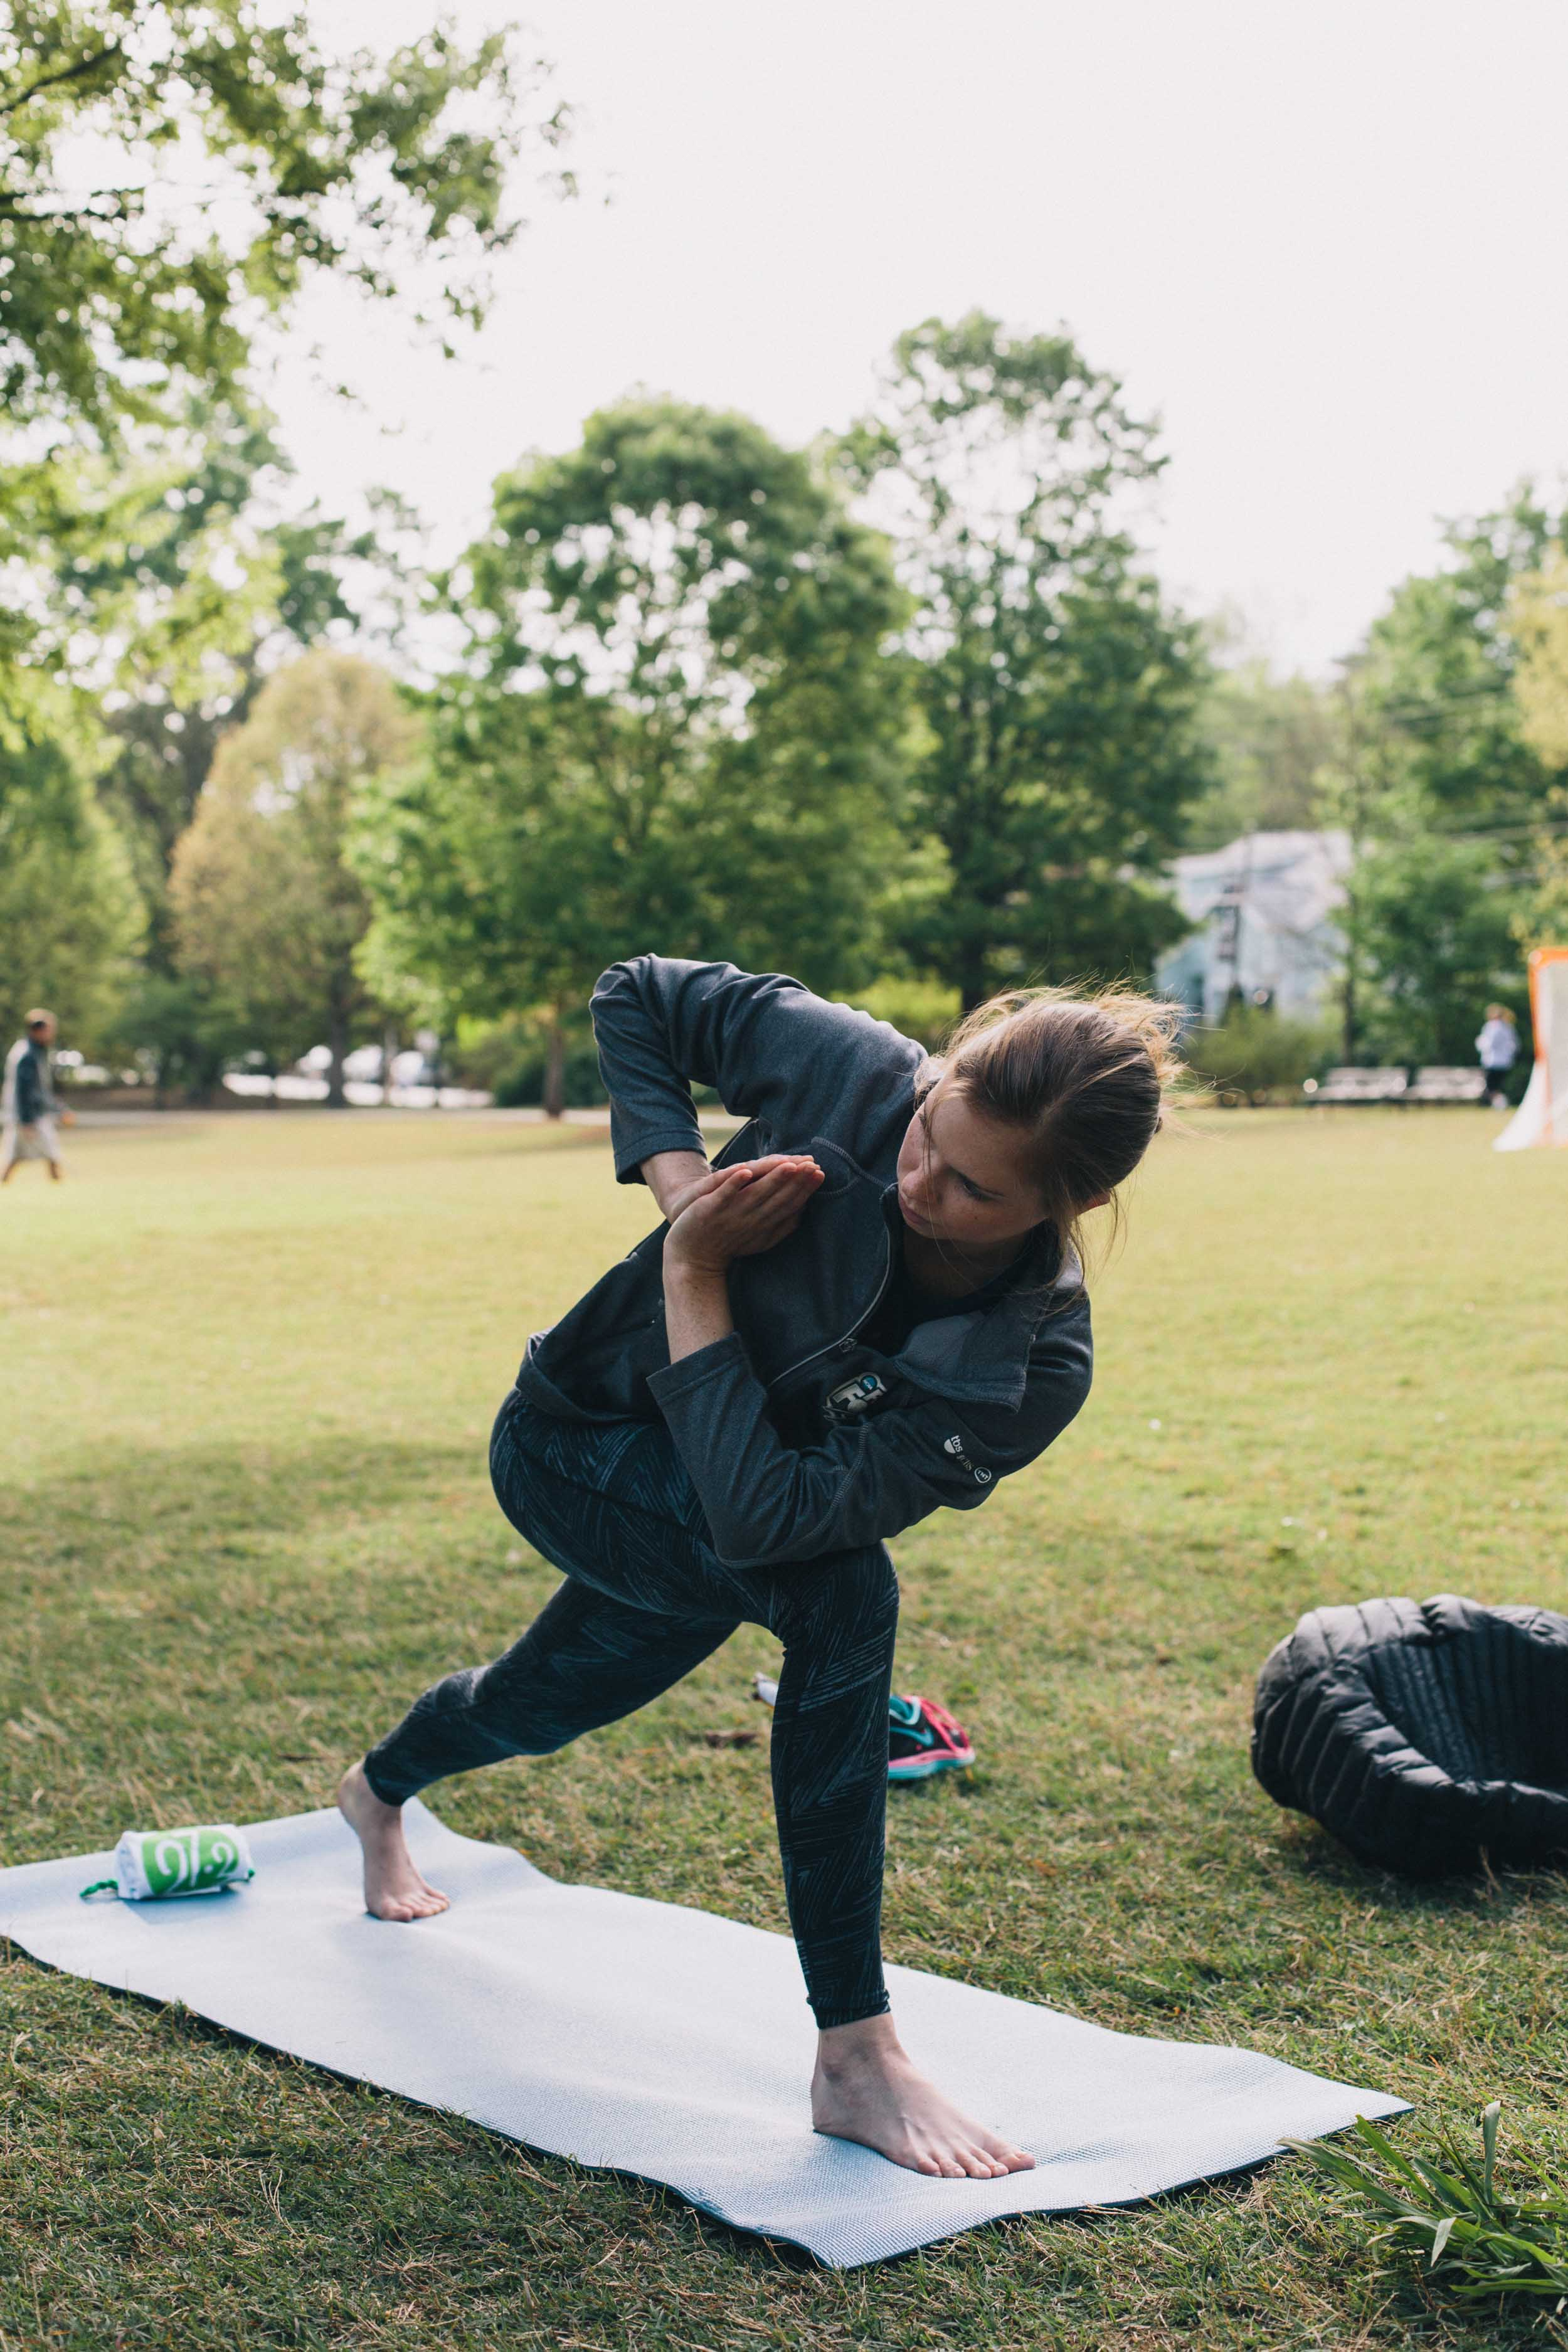 jimmy-rowalt-atlanta-event-photography-yoga-014.jpg